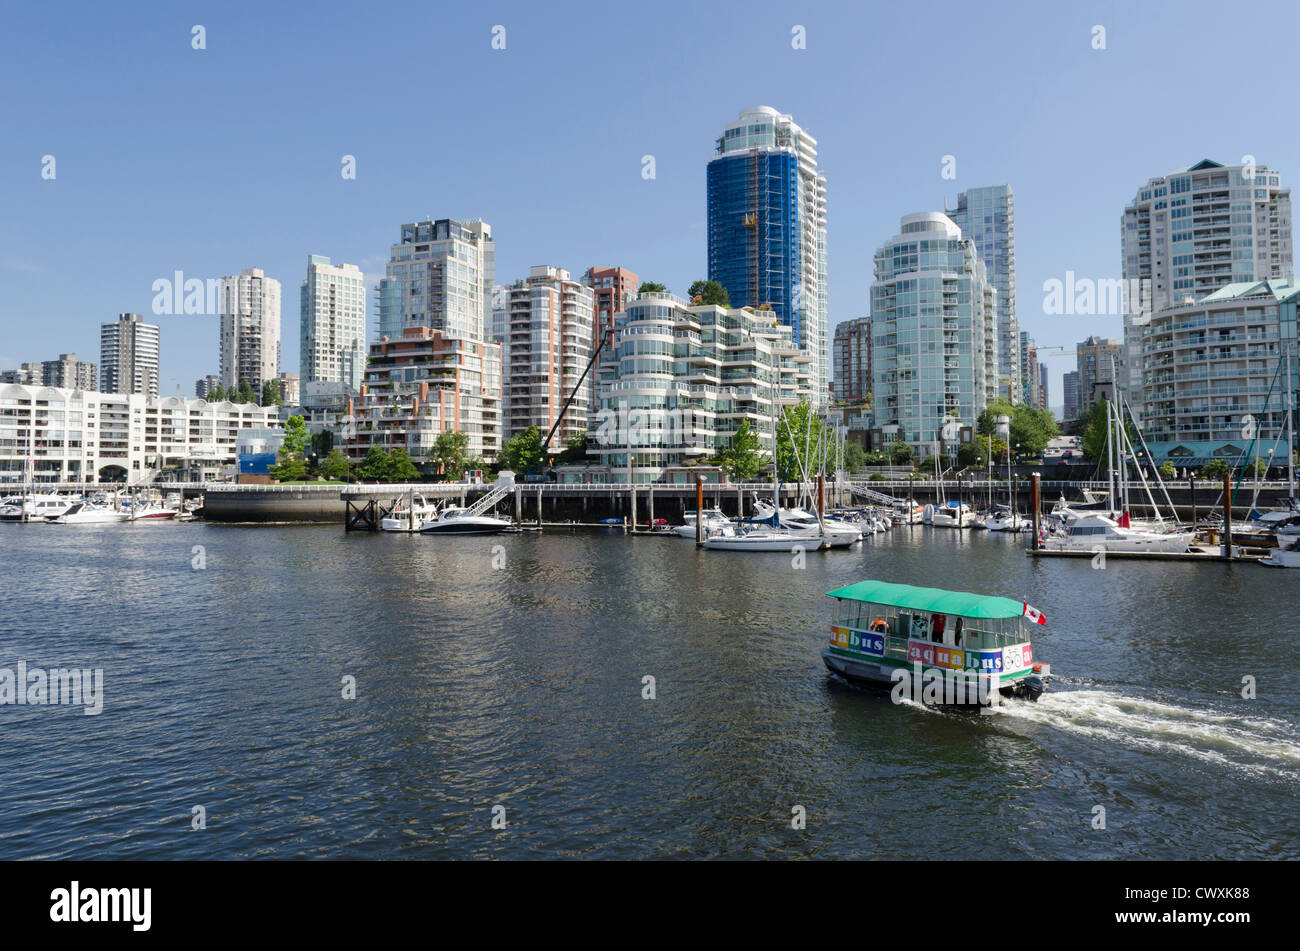 View from Granville Island looking across to downtown Vancouver, Canada - Stock Image